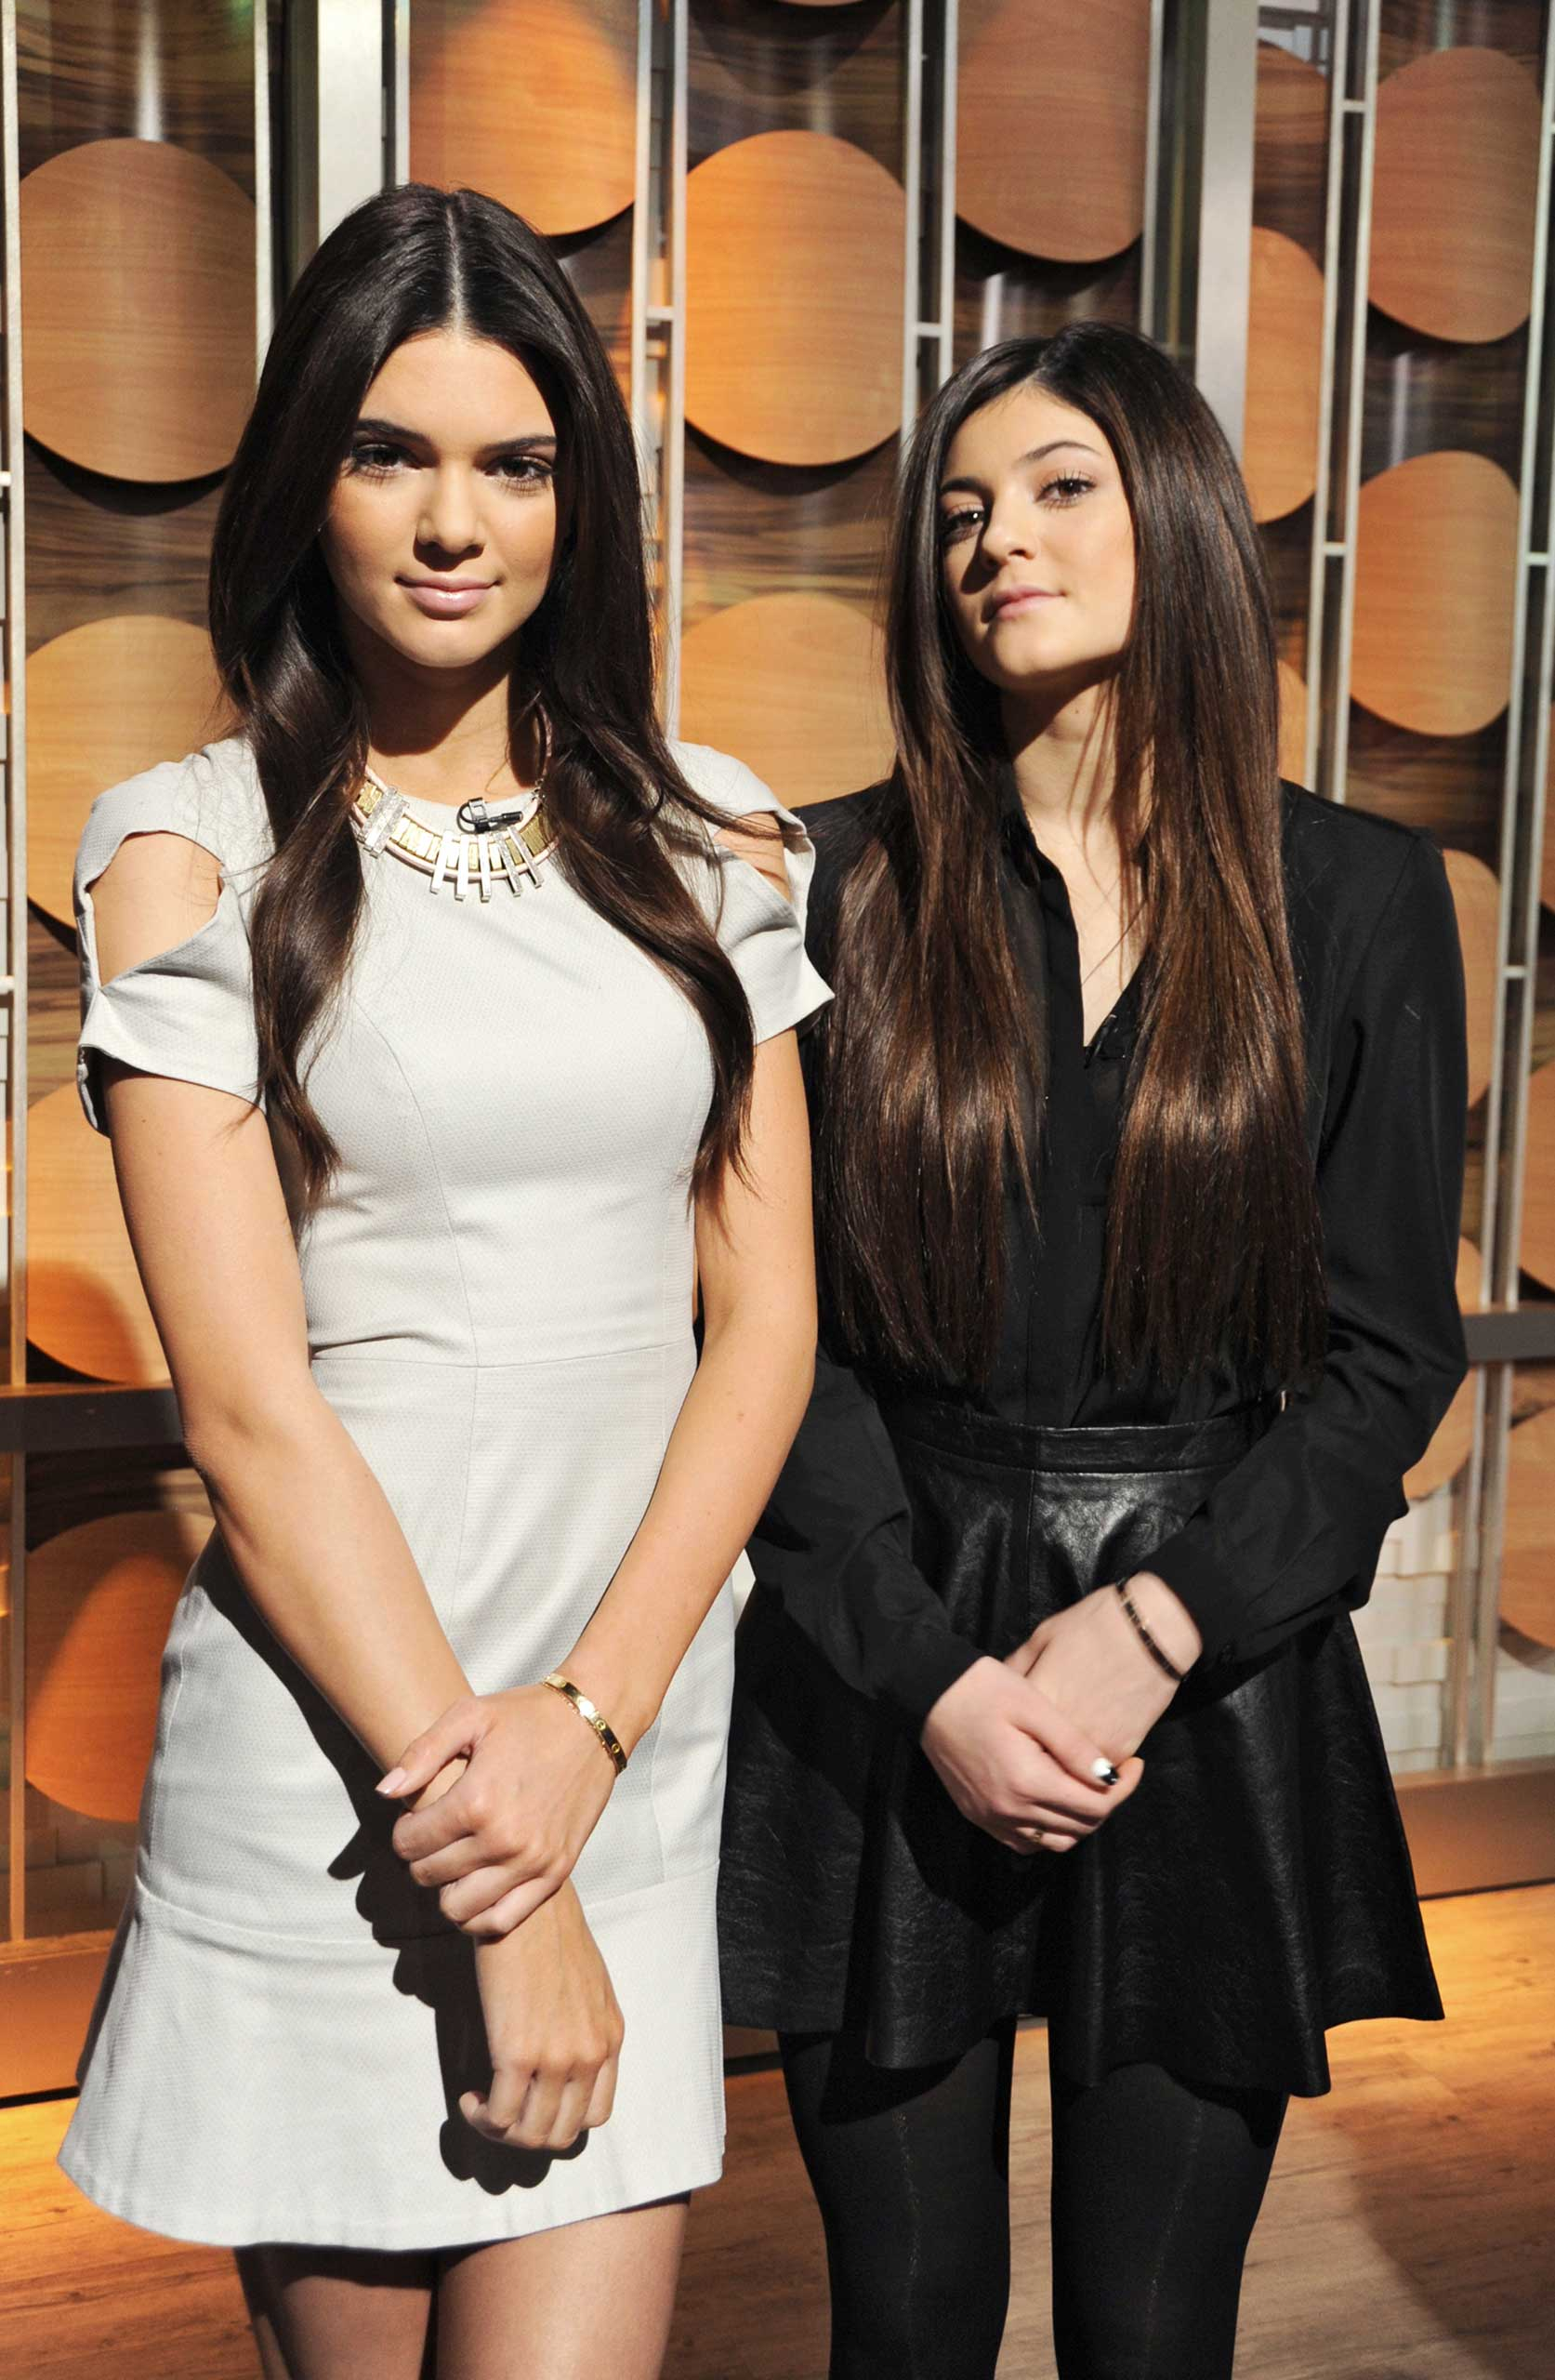 Reality stars Kendall and Kylie Jenner share hot spring trends for teens on  Good Morning America,  2/8/13, airing on the ABC Television Network. (Photo by Donna Svennevik/Disney-ABC via Getty Images)KYLIE JENNER, KENDALL JENNER